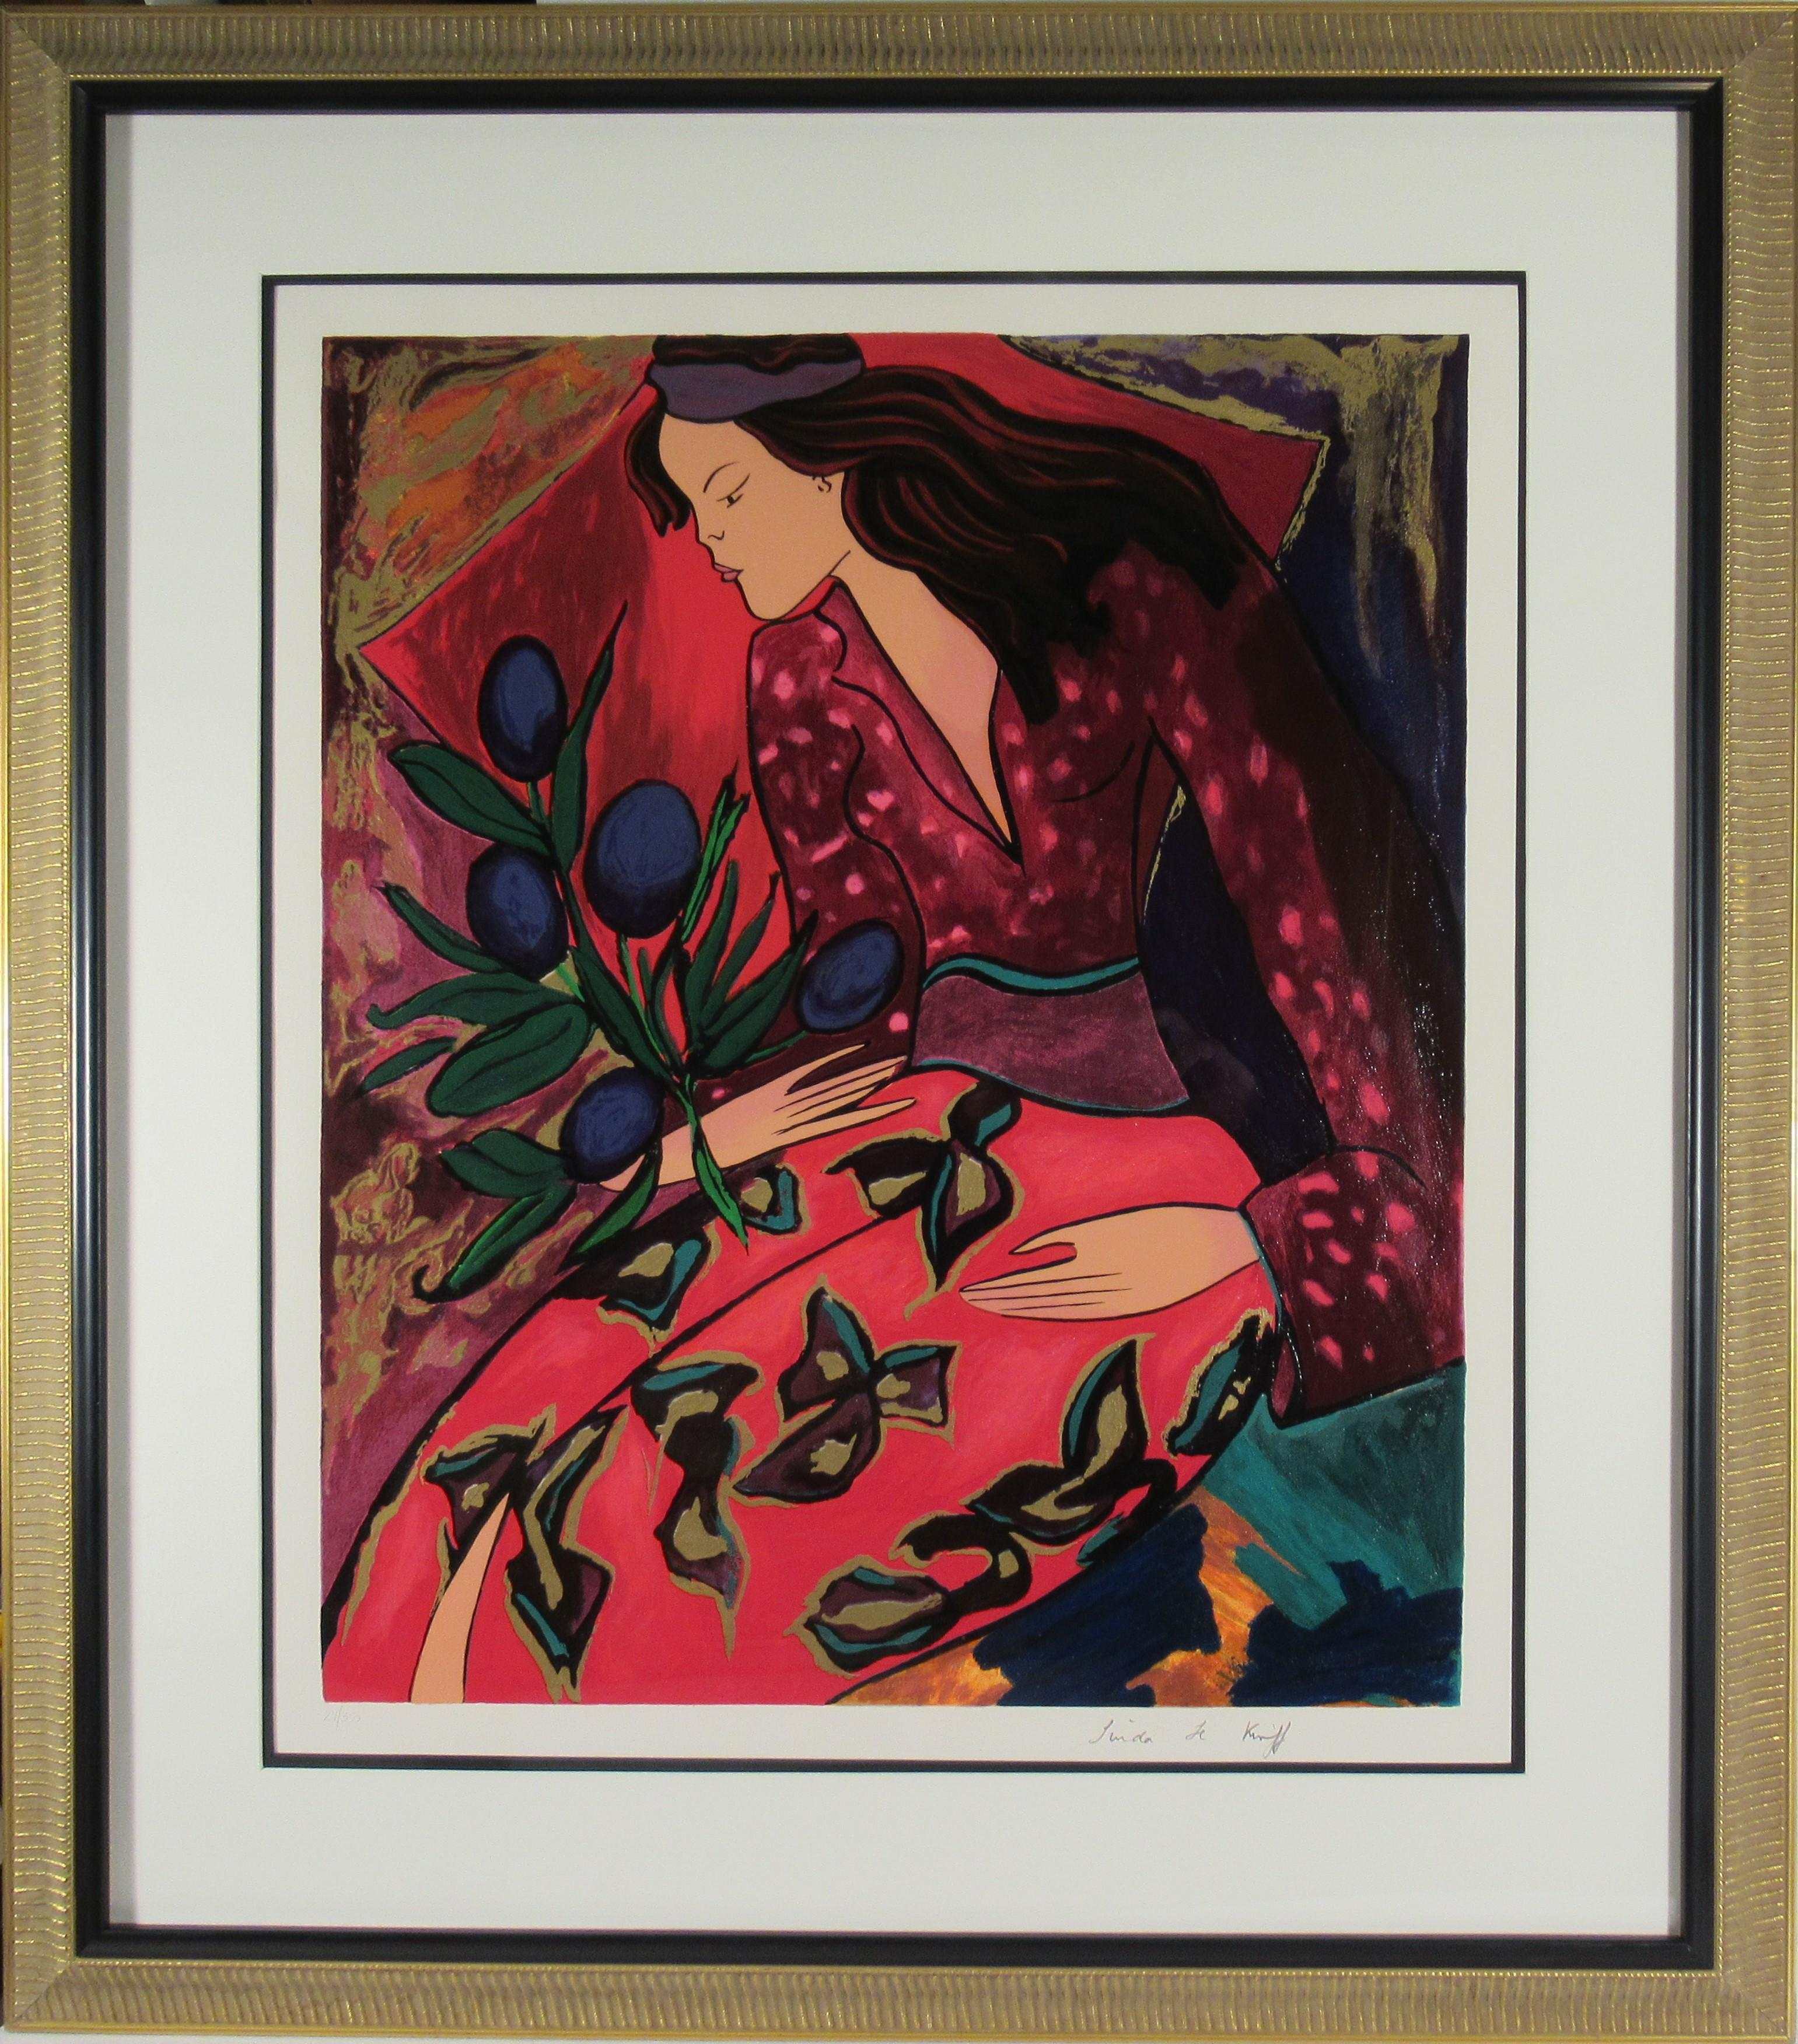 Untitled, Woman with Tulips